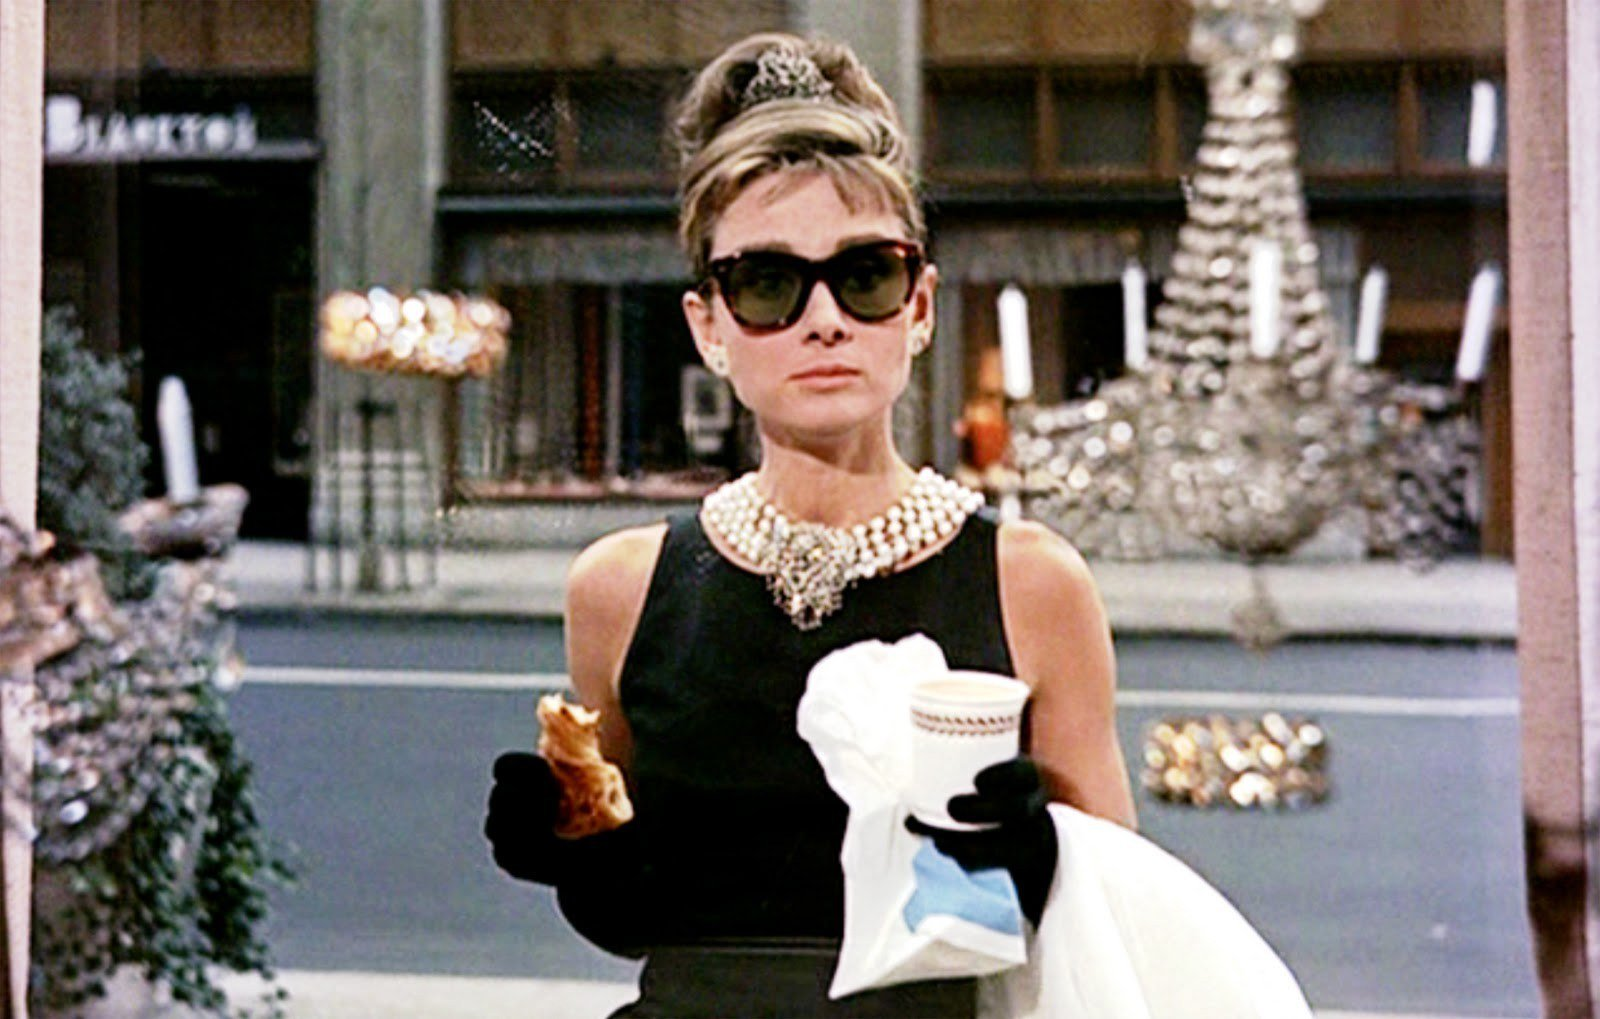 Breakfast At Tiffany's - Huckleberry Friend